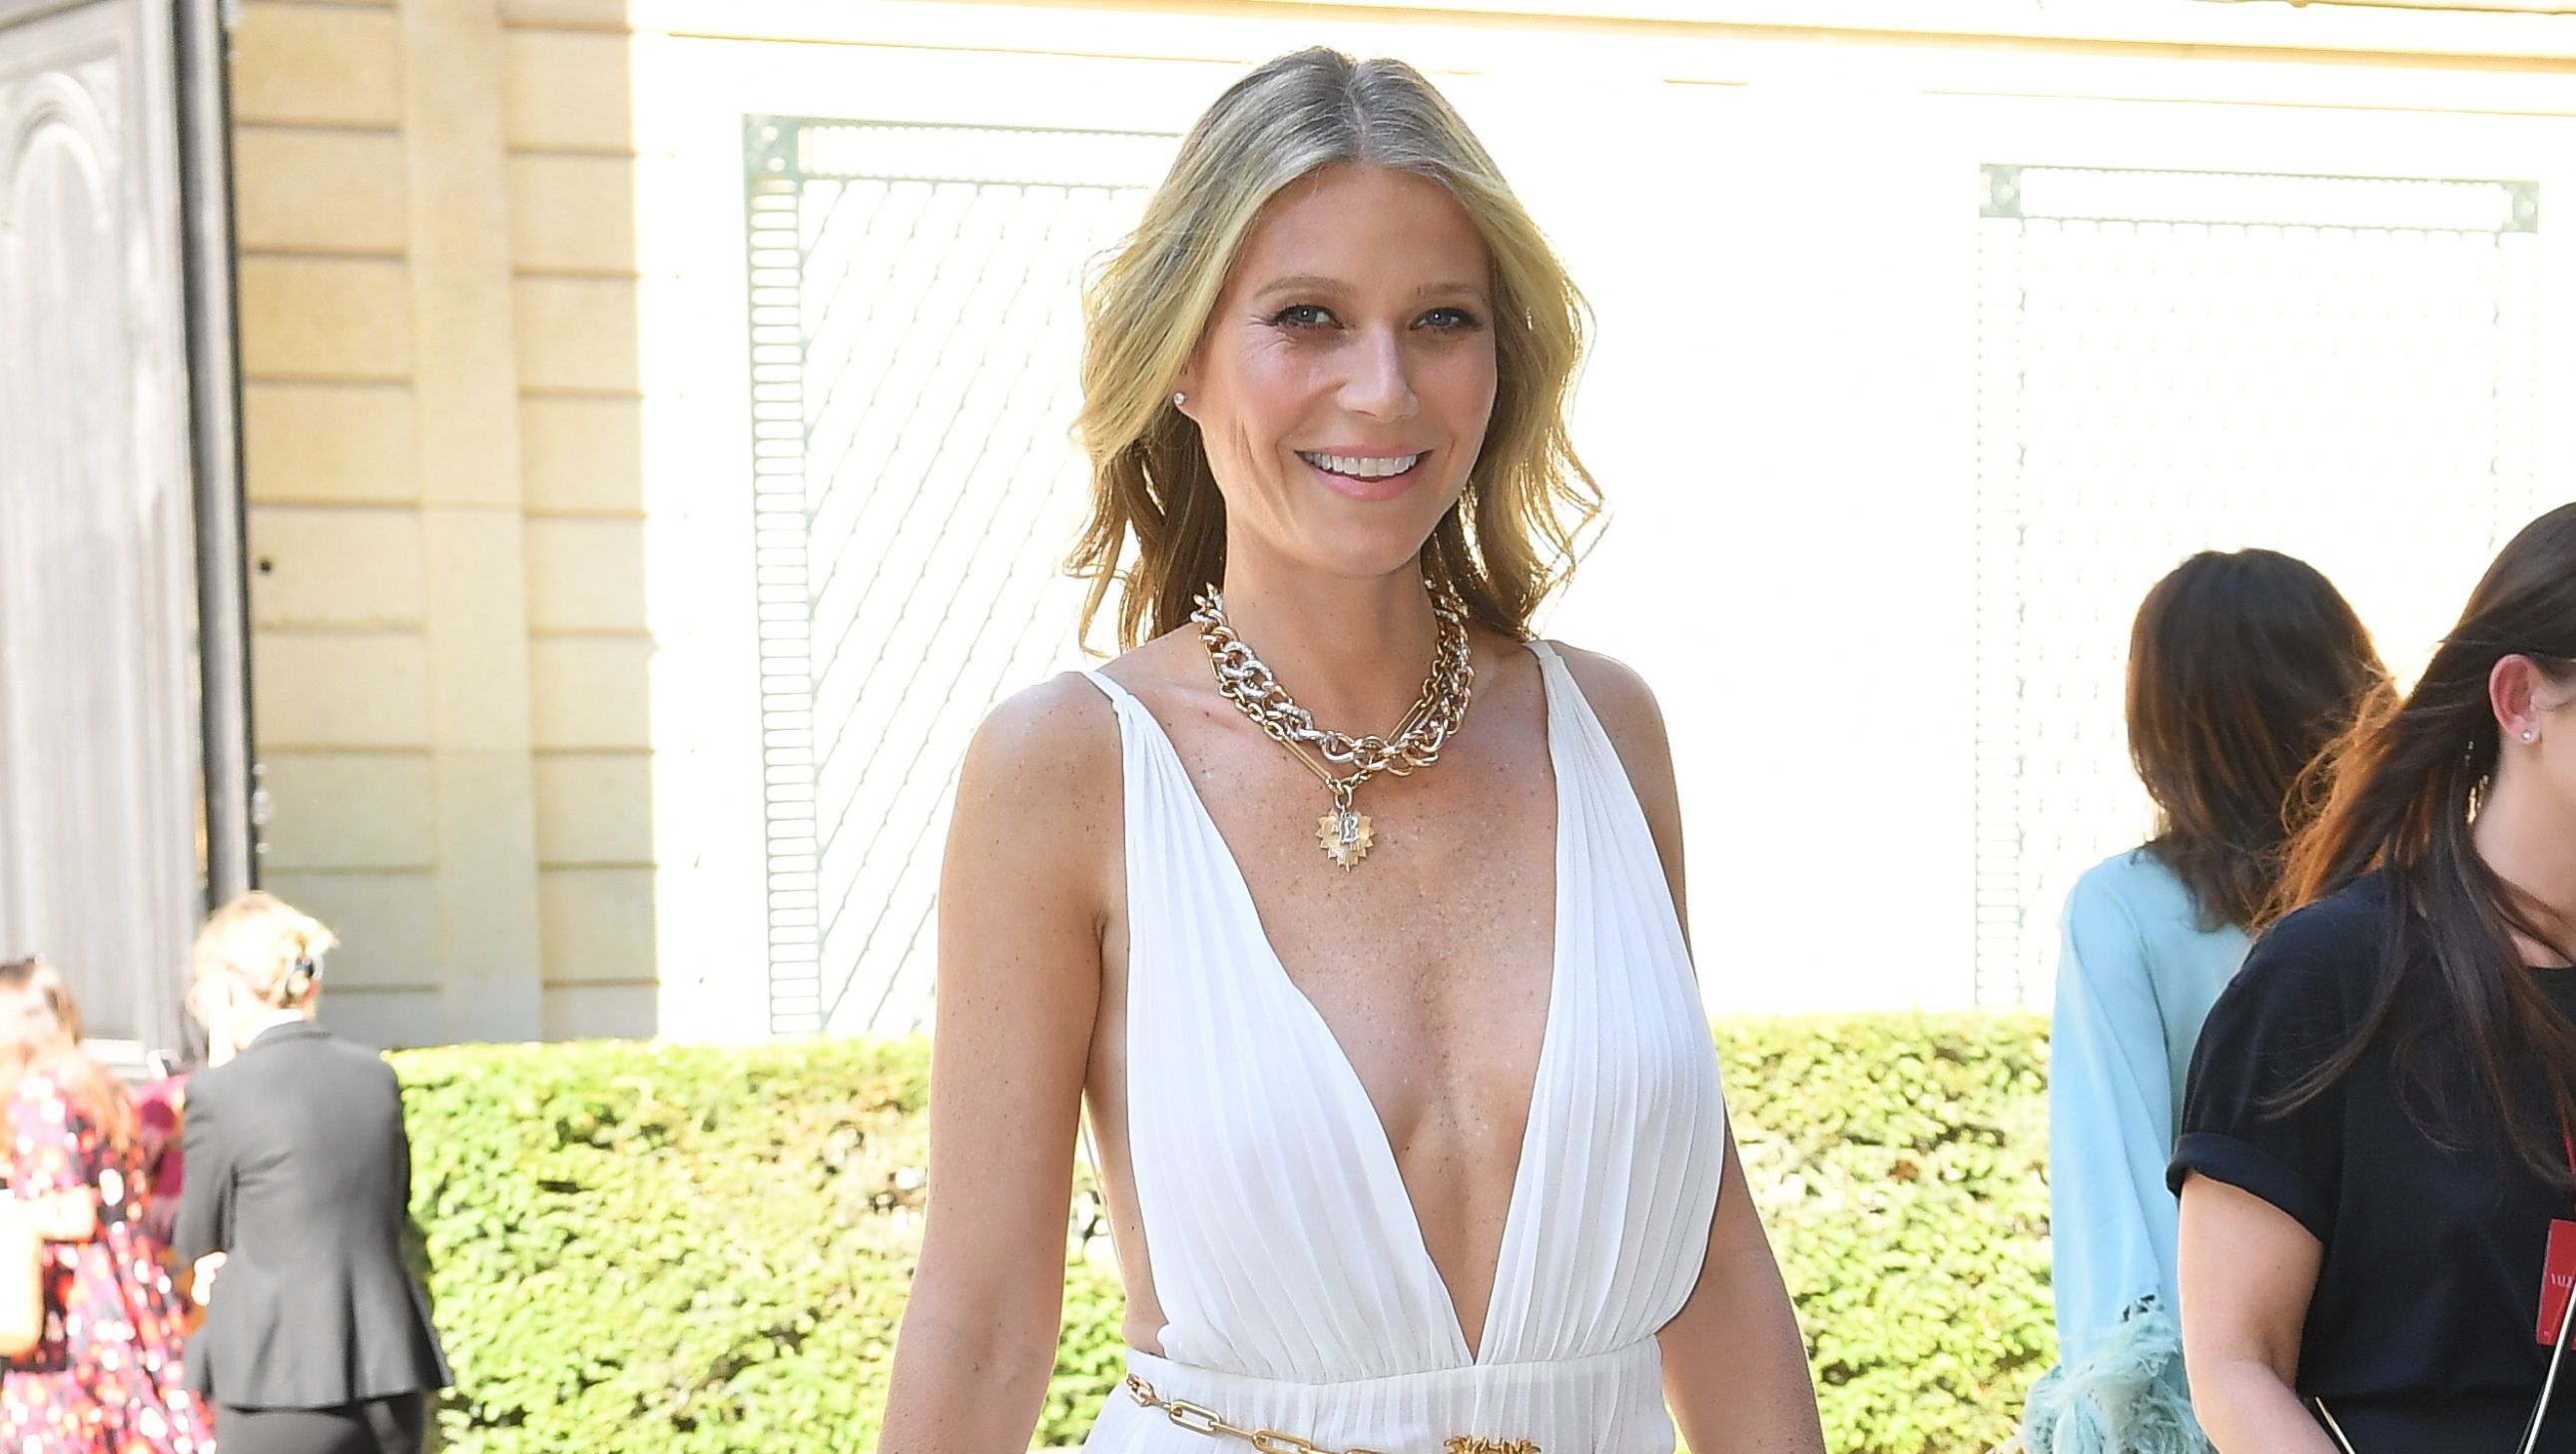 All Nude Image did gwyneth paltrow really share a nude?